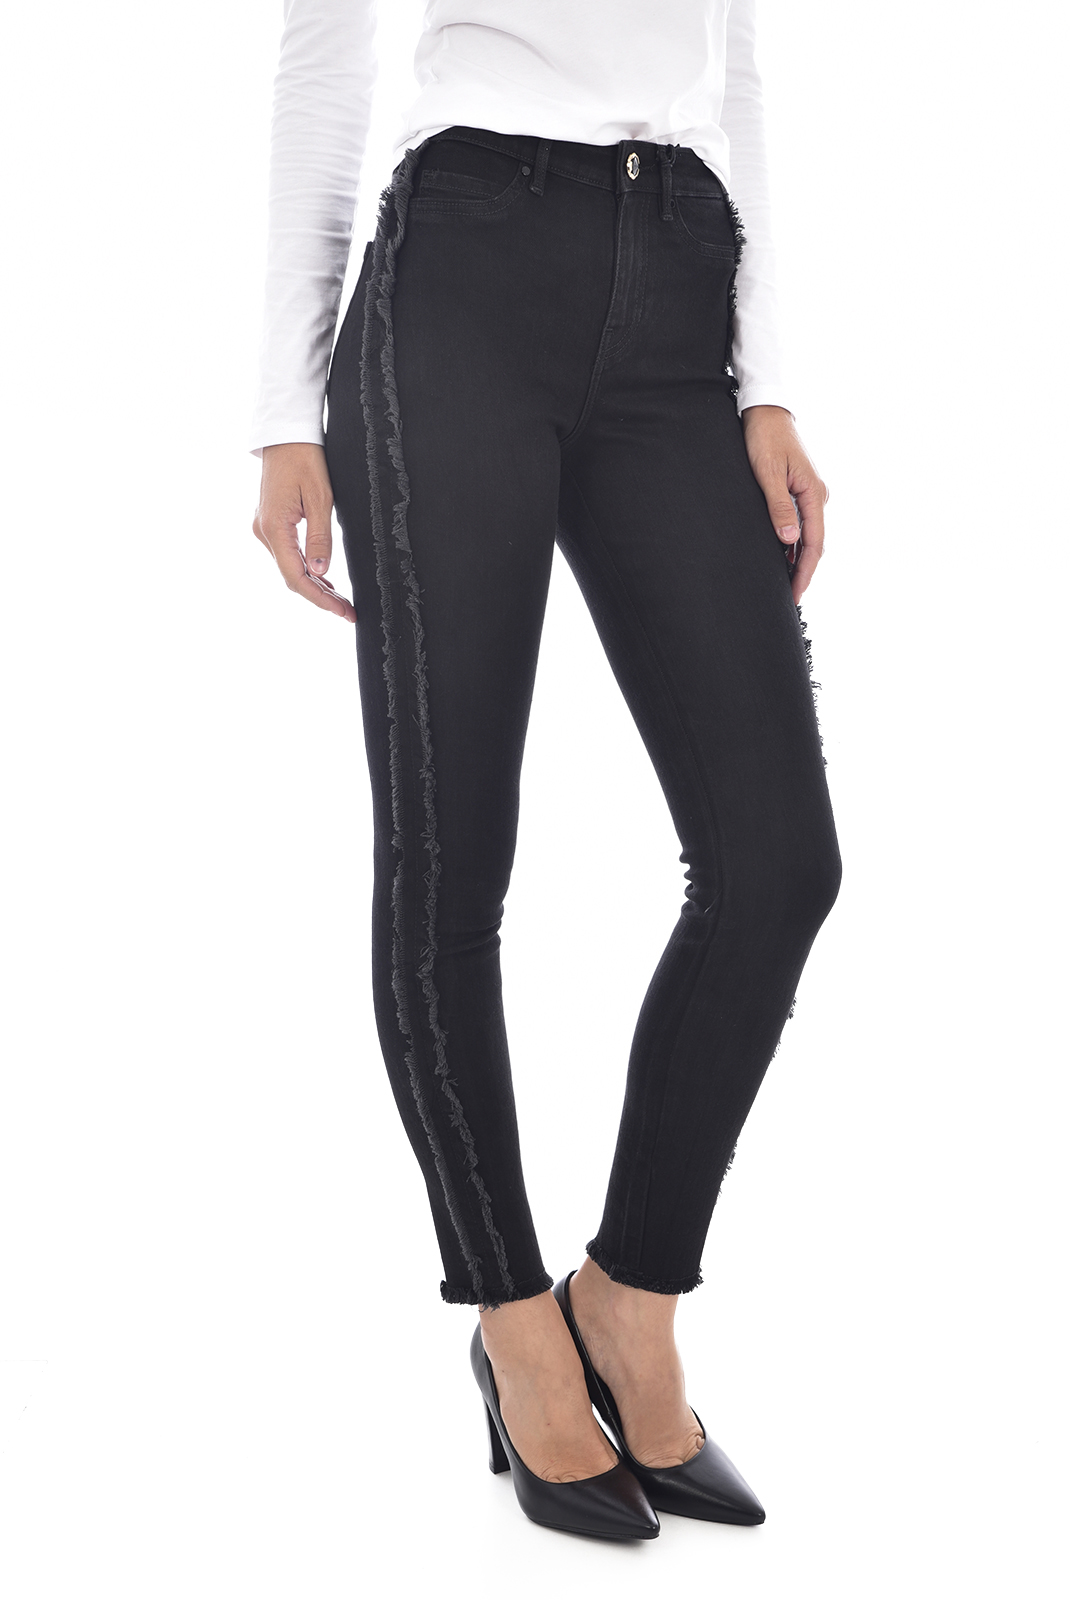 Femme  Guess jeans W84A41 D3BY0 1981 FRINGED PSB1 NOIR